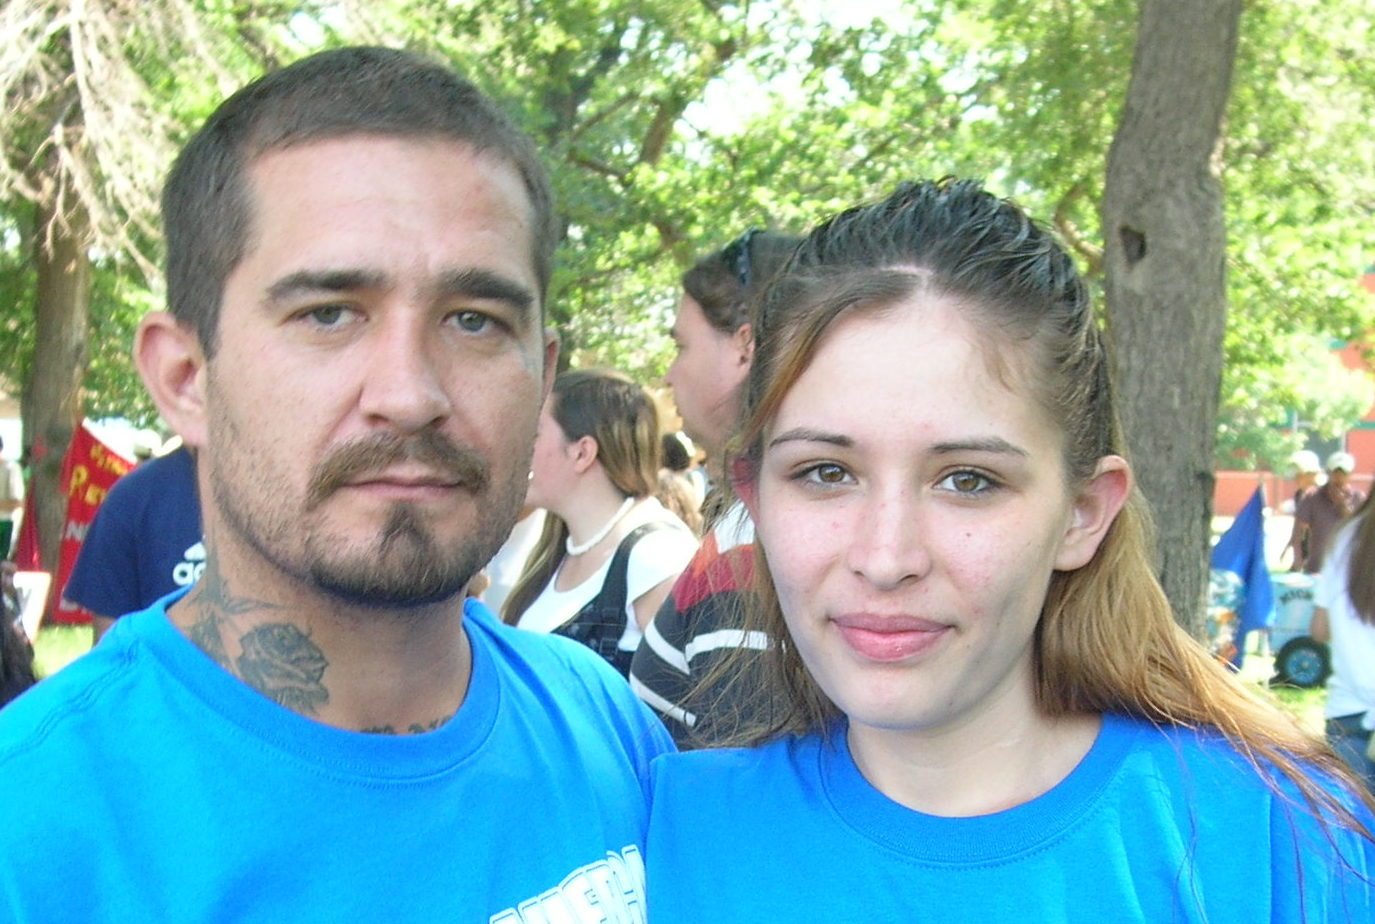 Latina_o couple at immigrant march.jpg